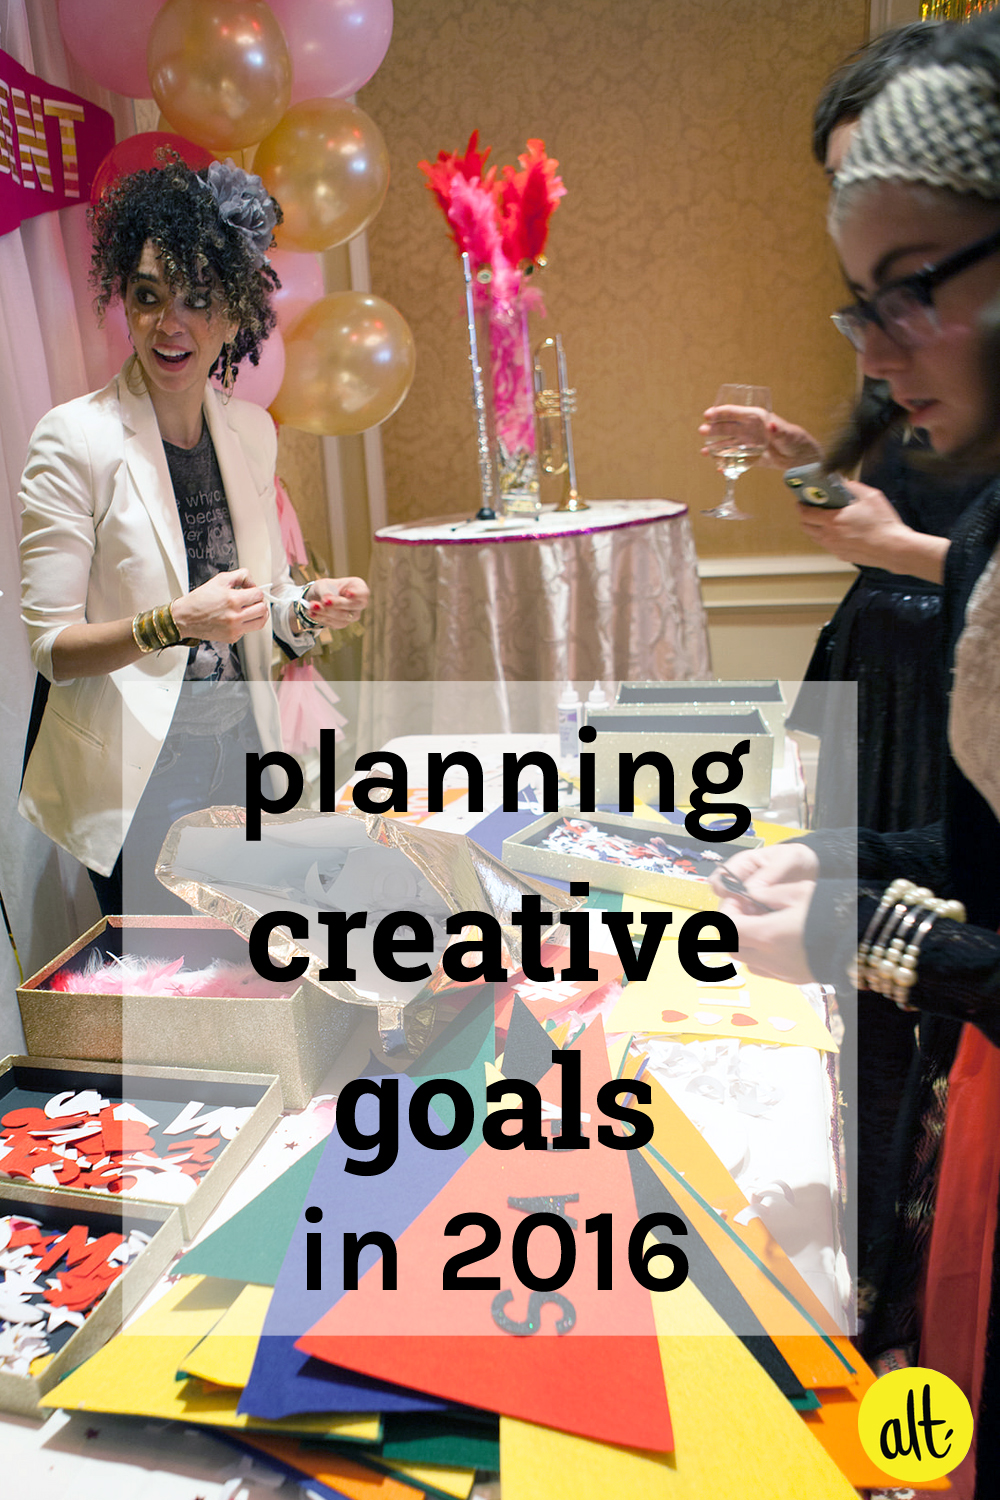 be inspired by our Alt community's goals for 2016!